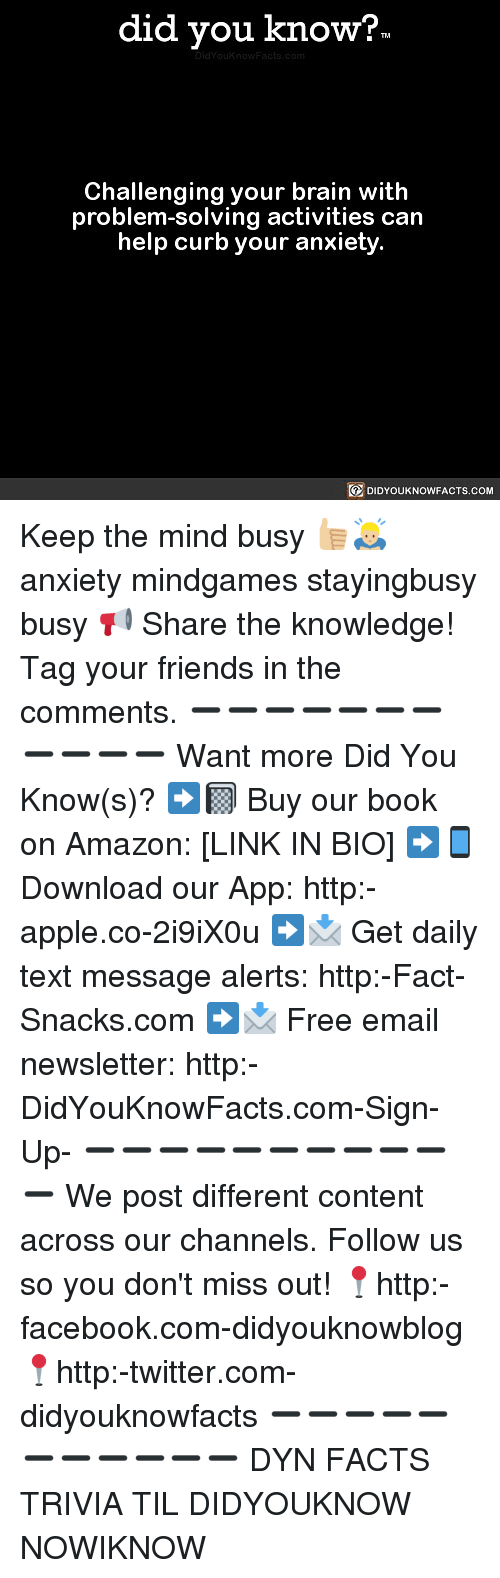 Amazon, Apple, and Facebook: did you know?  Challenging your brain with  problem-solving activities can  help curb your anxiety.  DIDYOUKNOWFACTS.COM Keep the mind busy 👍🏼🙇🏼♂️ anxiety mindgames stayingbusy busy 📢 Share the knowledge! Tag your friends in the comments. ➖➖➖➖➖➖➖➖➖➖➖ Want more Did You Know(s)? ➡📓 Buy our book on Amazon: [LINK IN BIO] ➡📱 Download our App: http:-apple.co-2i9iX0u ➡📩 Get daily text message alerts: http:-Fact-Snacks.com ➡📩 Free email newsletter: http:-DidYouKnowFacts.com-Sign-Up- ➖➖➖➖➖➖➖➖➖➖➖ We post different content across our channels. Follow us so you don't miss out! 📍http:-facebook.com-didyouknowblog 📍http:-twitter.com-didyouknowfacts ➖➖➖➖➖➖➖➖➖➖➖ DYN FACTS TRIVIA TIL DIDYOUKNOW NOWIKNOW